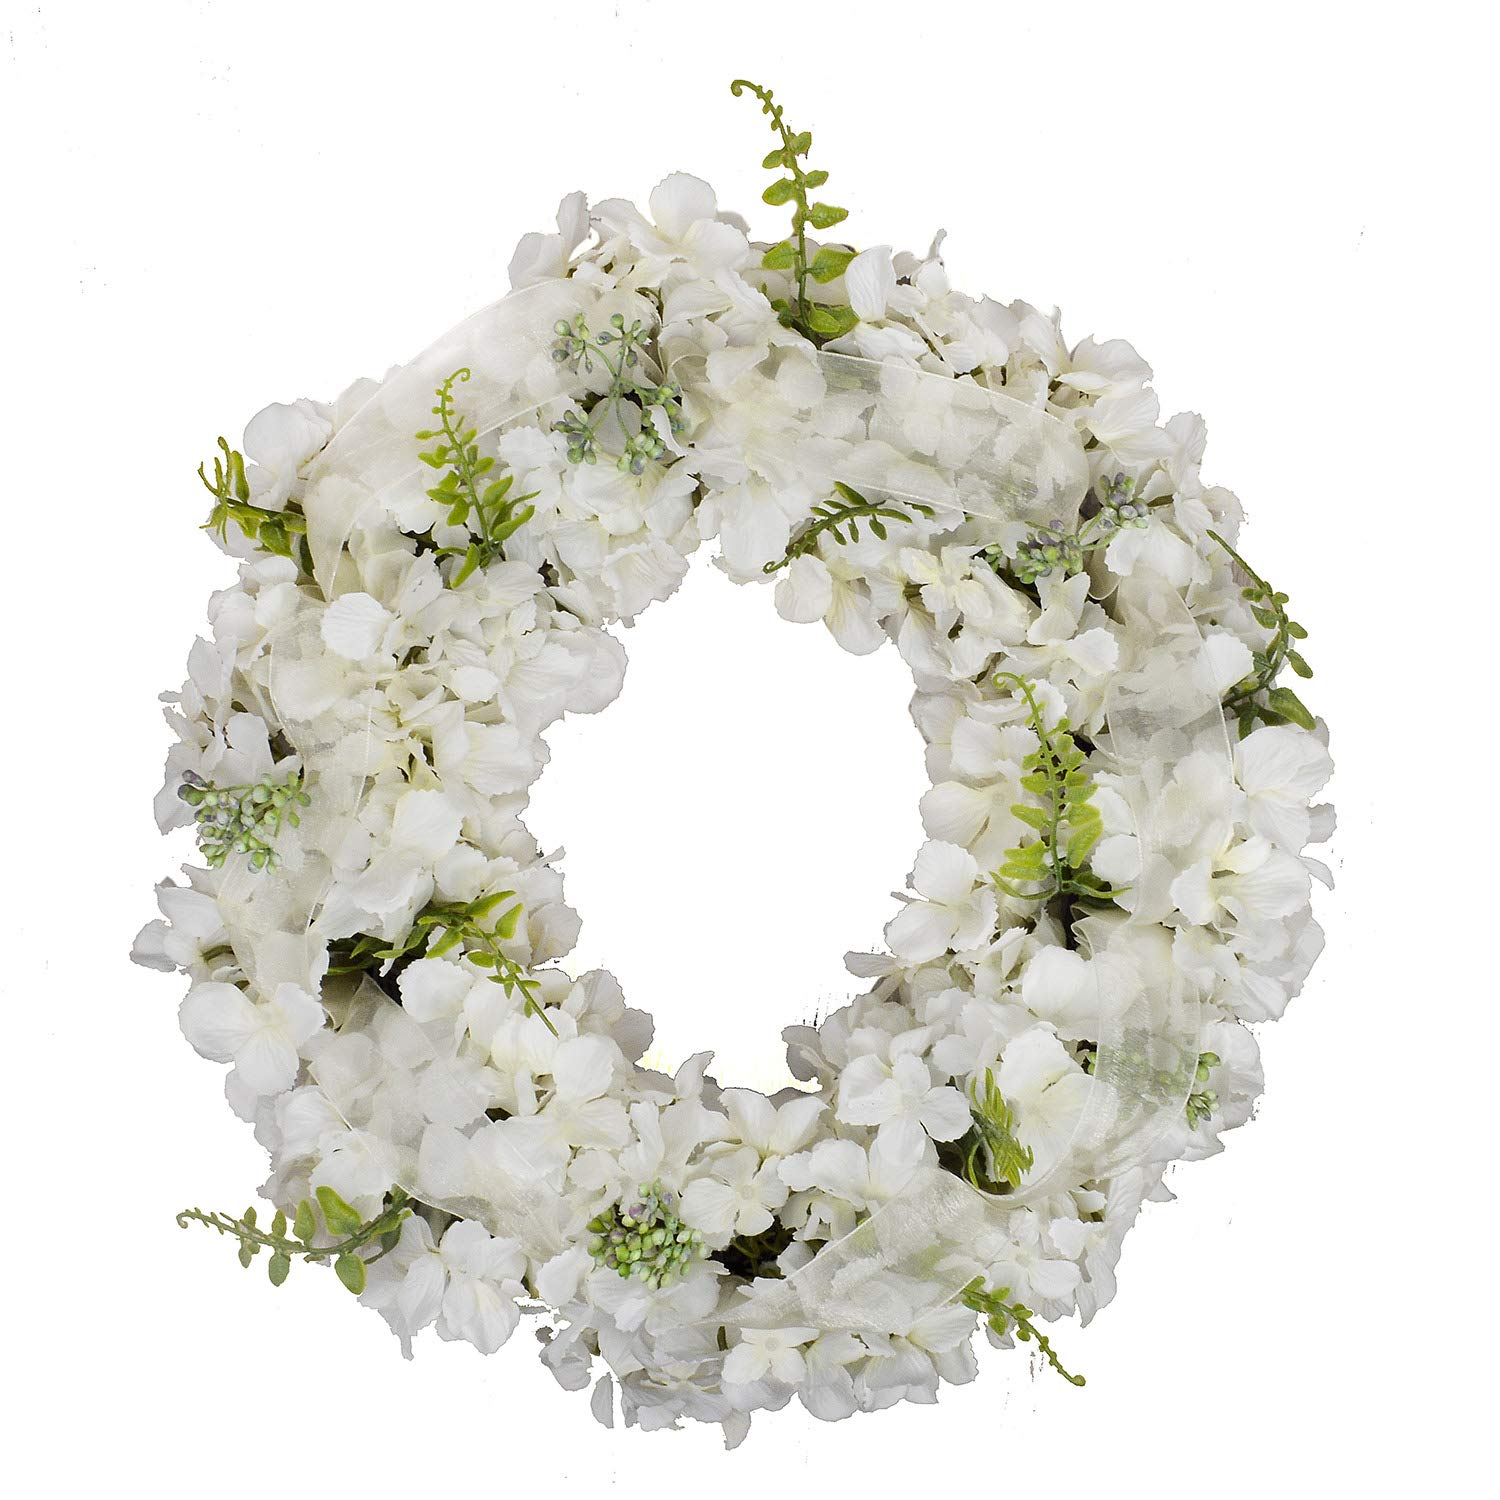 FAVOWREATH Vitality Series FAVO-W124 Handmade 15 inch White Hydrangea,Hello Letter,Grapevine Wreath for Summer/Fall Festival Front Door/Wall/Fireplace Every Day Nearly Natural Home Hanger Decor